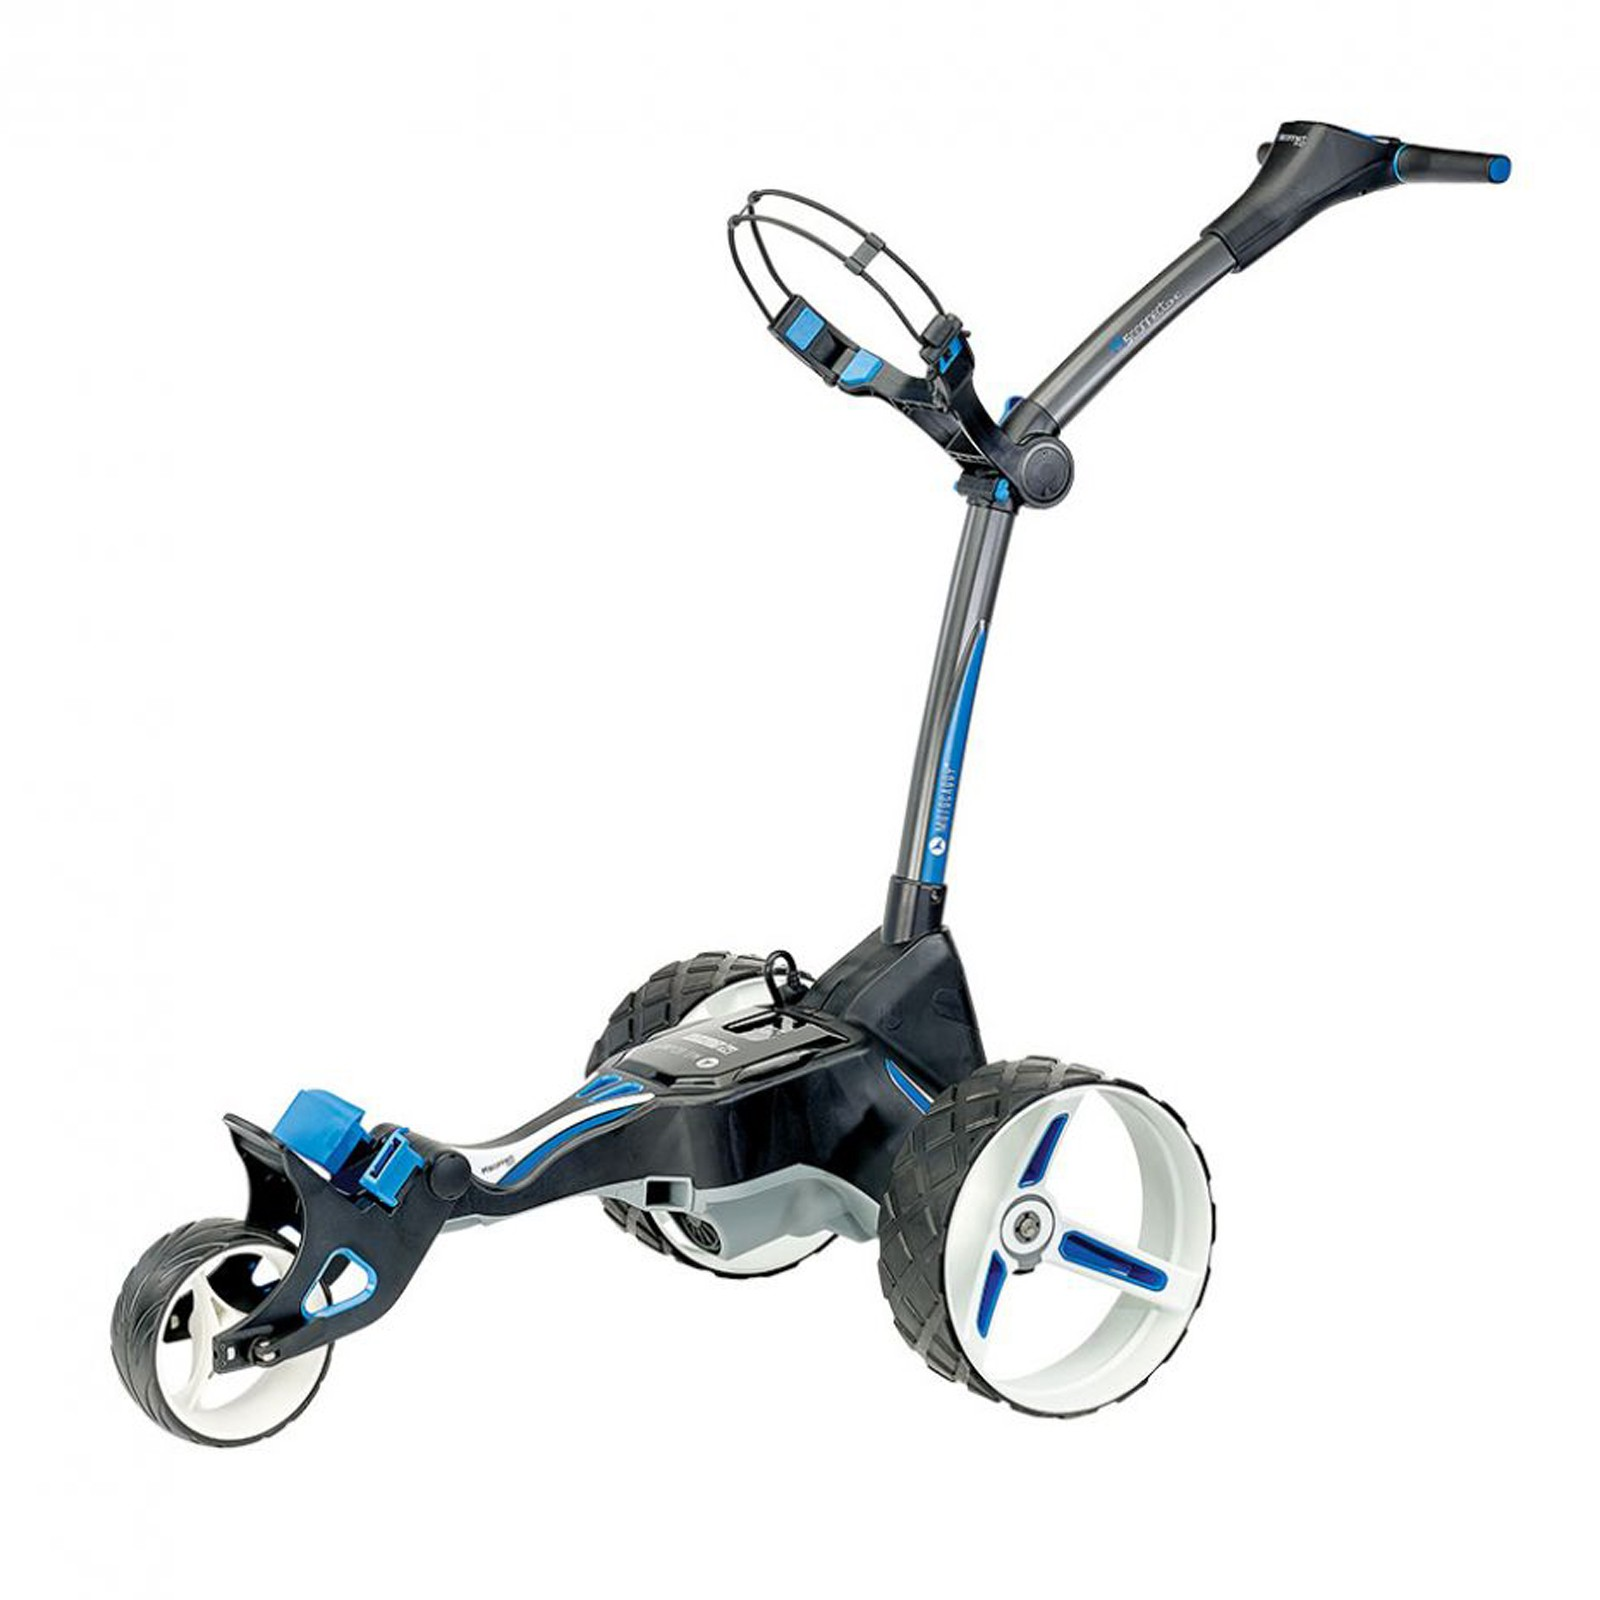 Motocaddy M5 Connect DHC